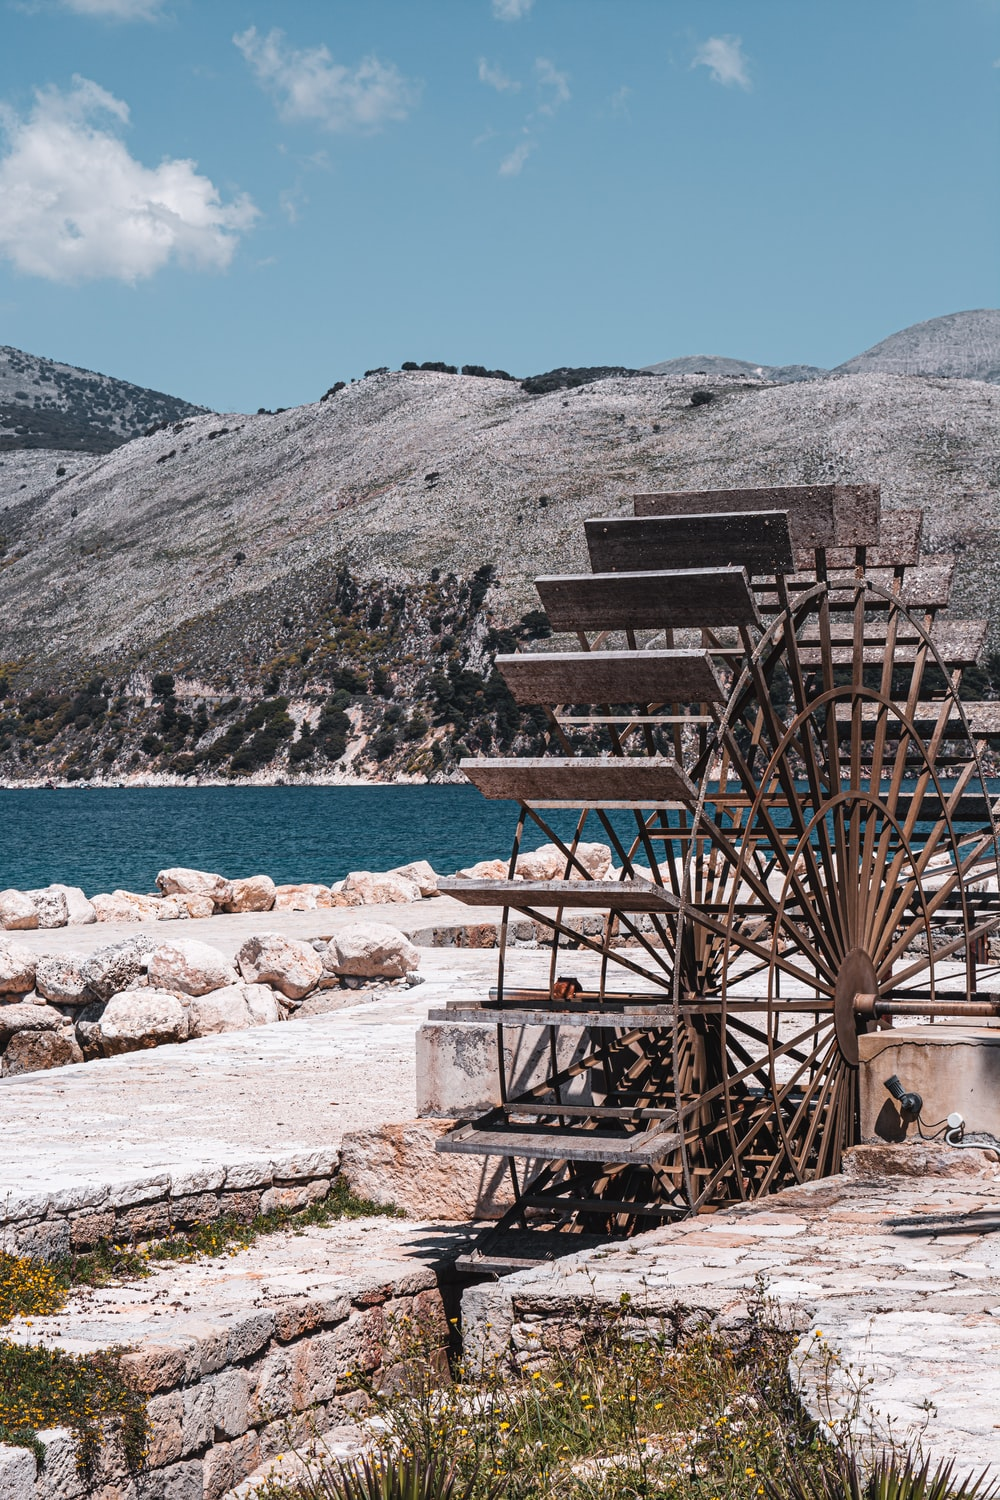 brown wooden stairs on rocky shore near body of water and mountain during daytime